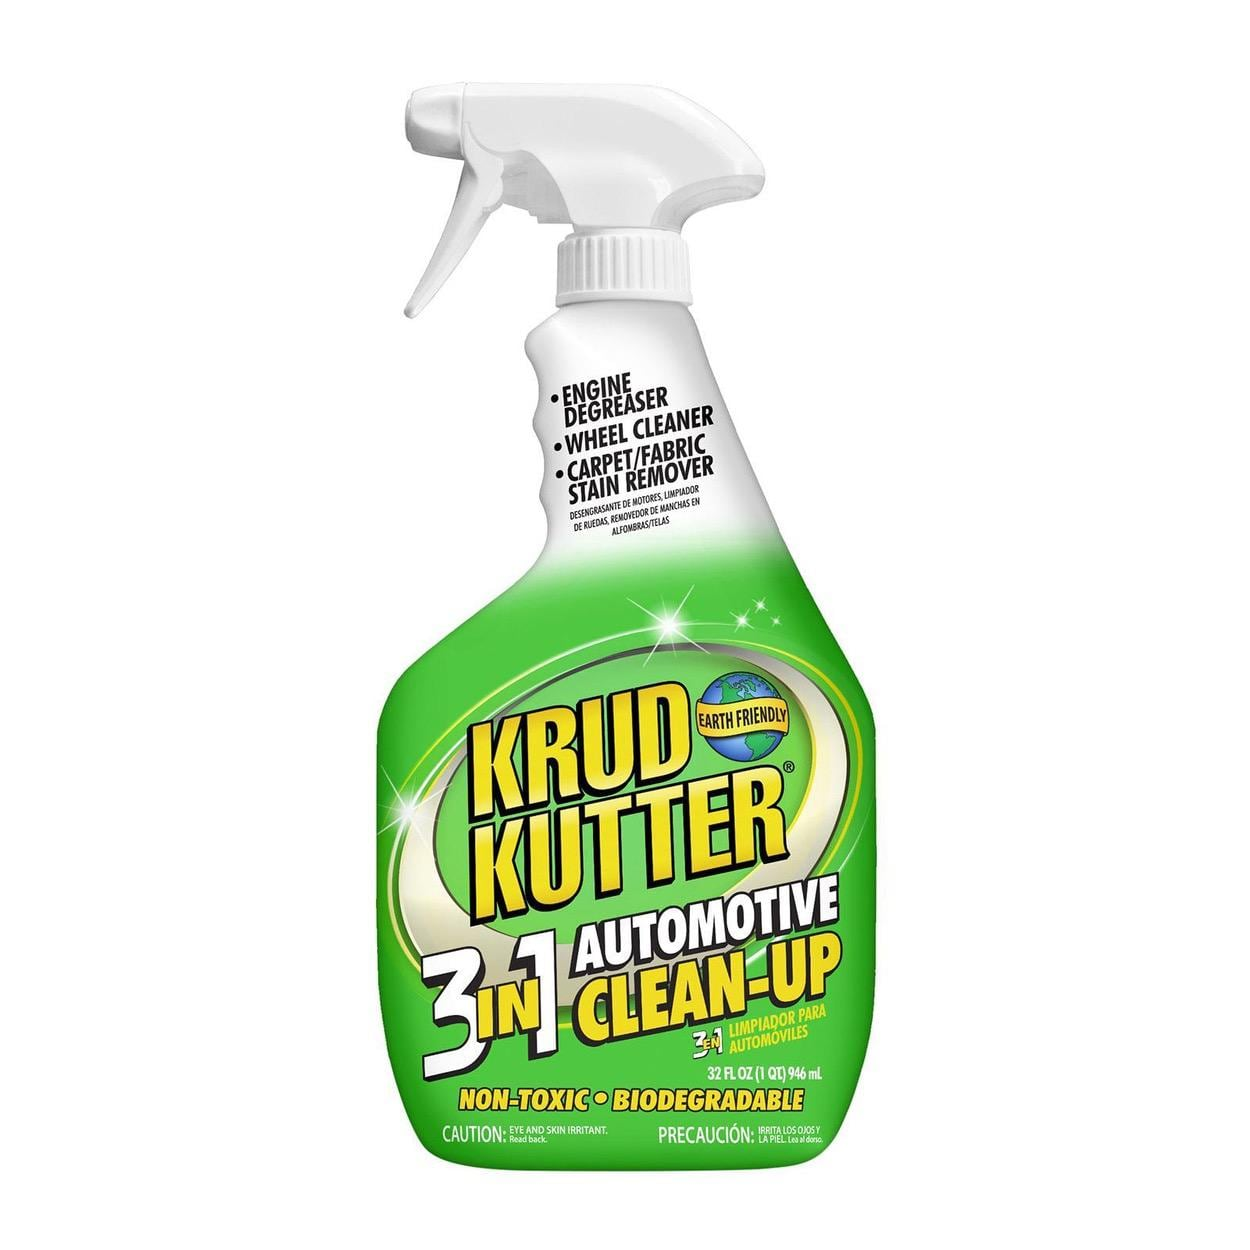 Krud 3-In1 Autotmotive Clean - Up